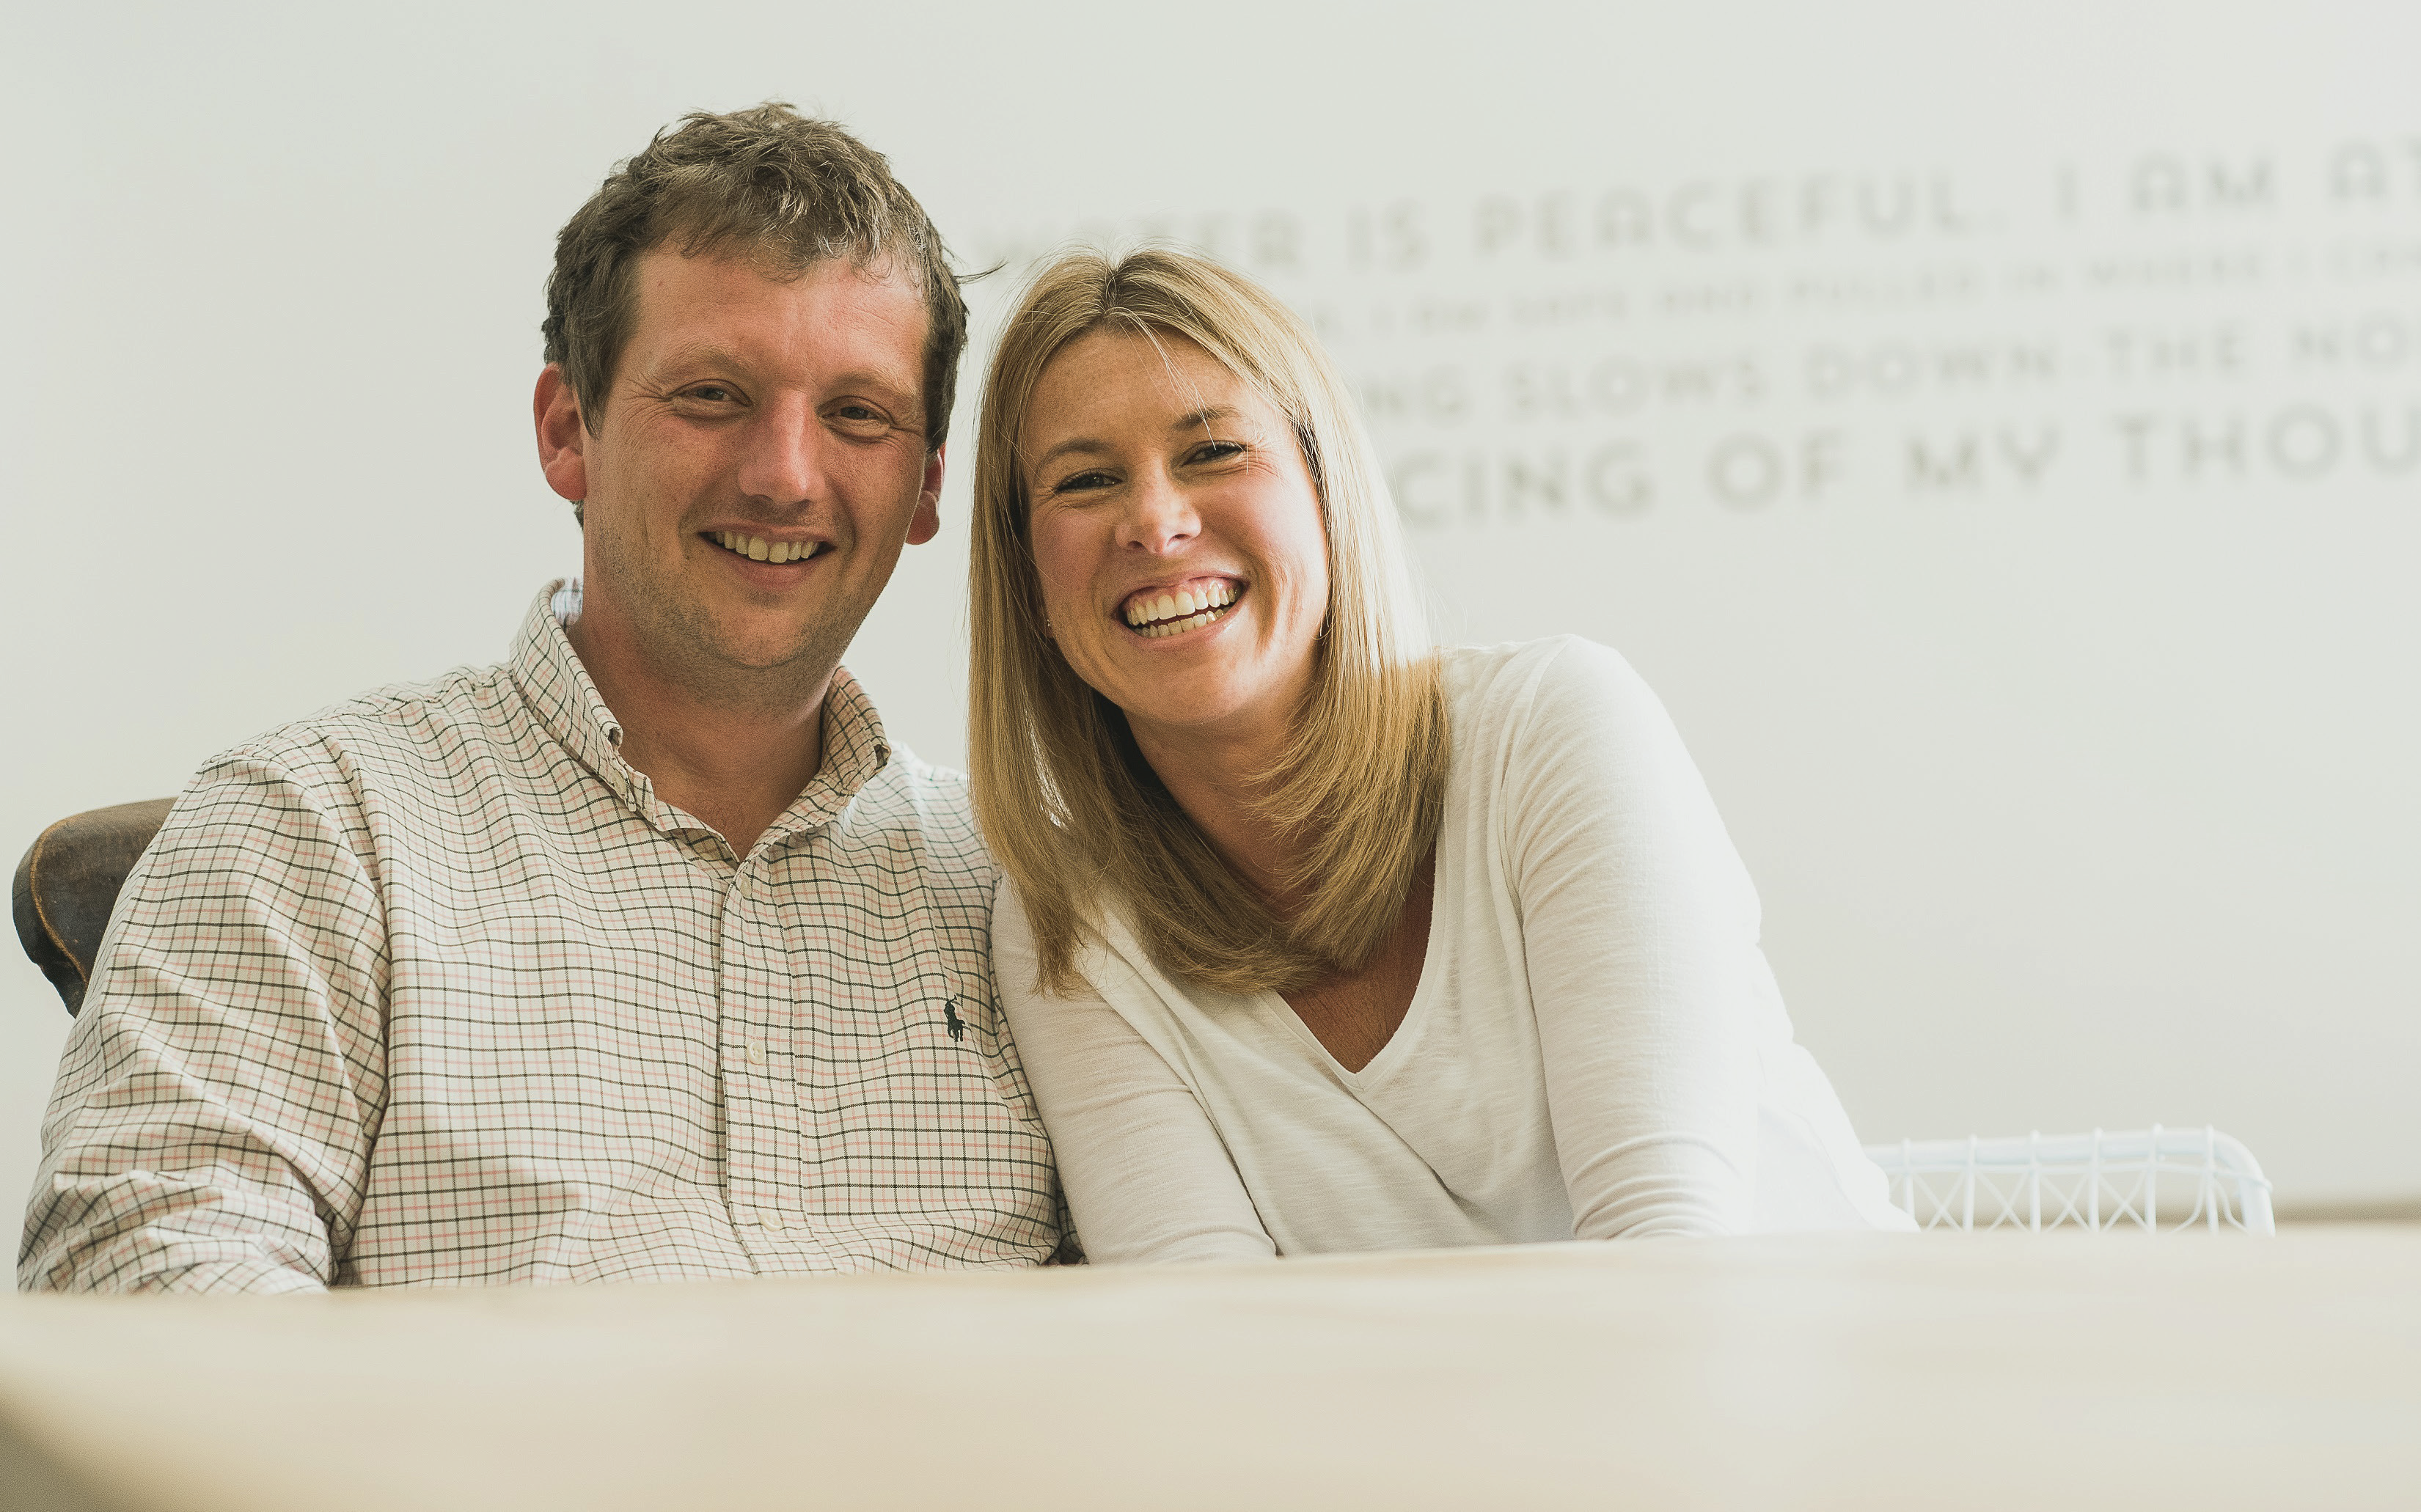 O C Spas was formed in 2015 by husband and wife team, Jonny and Lucy Bottrell